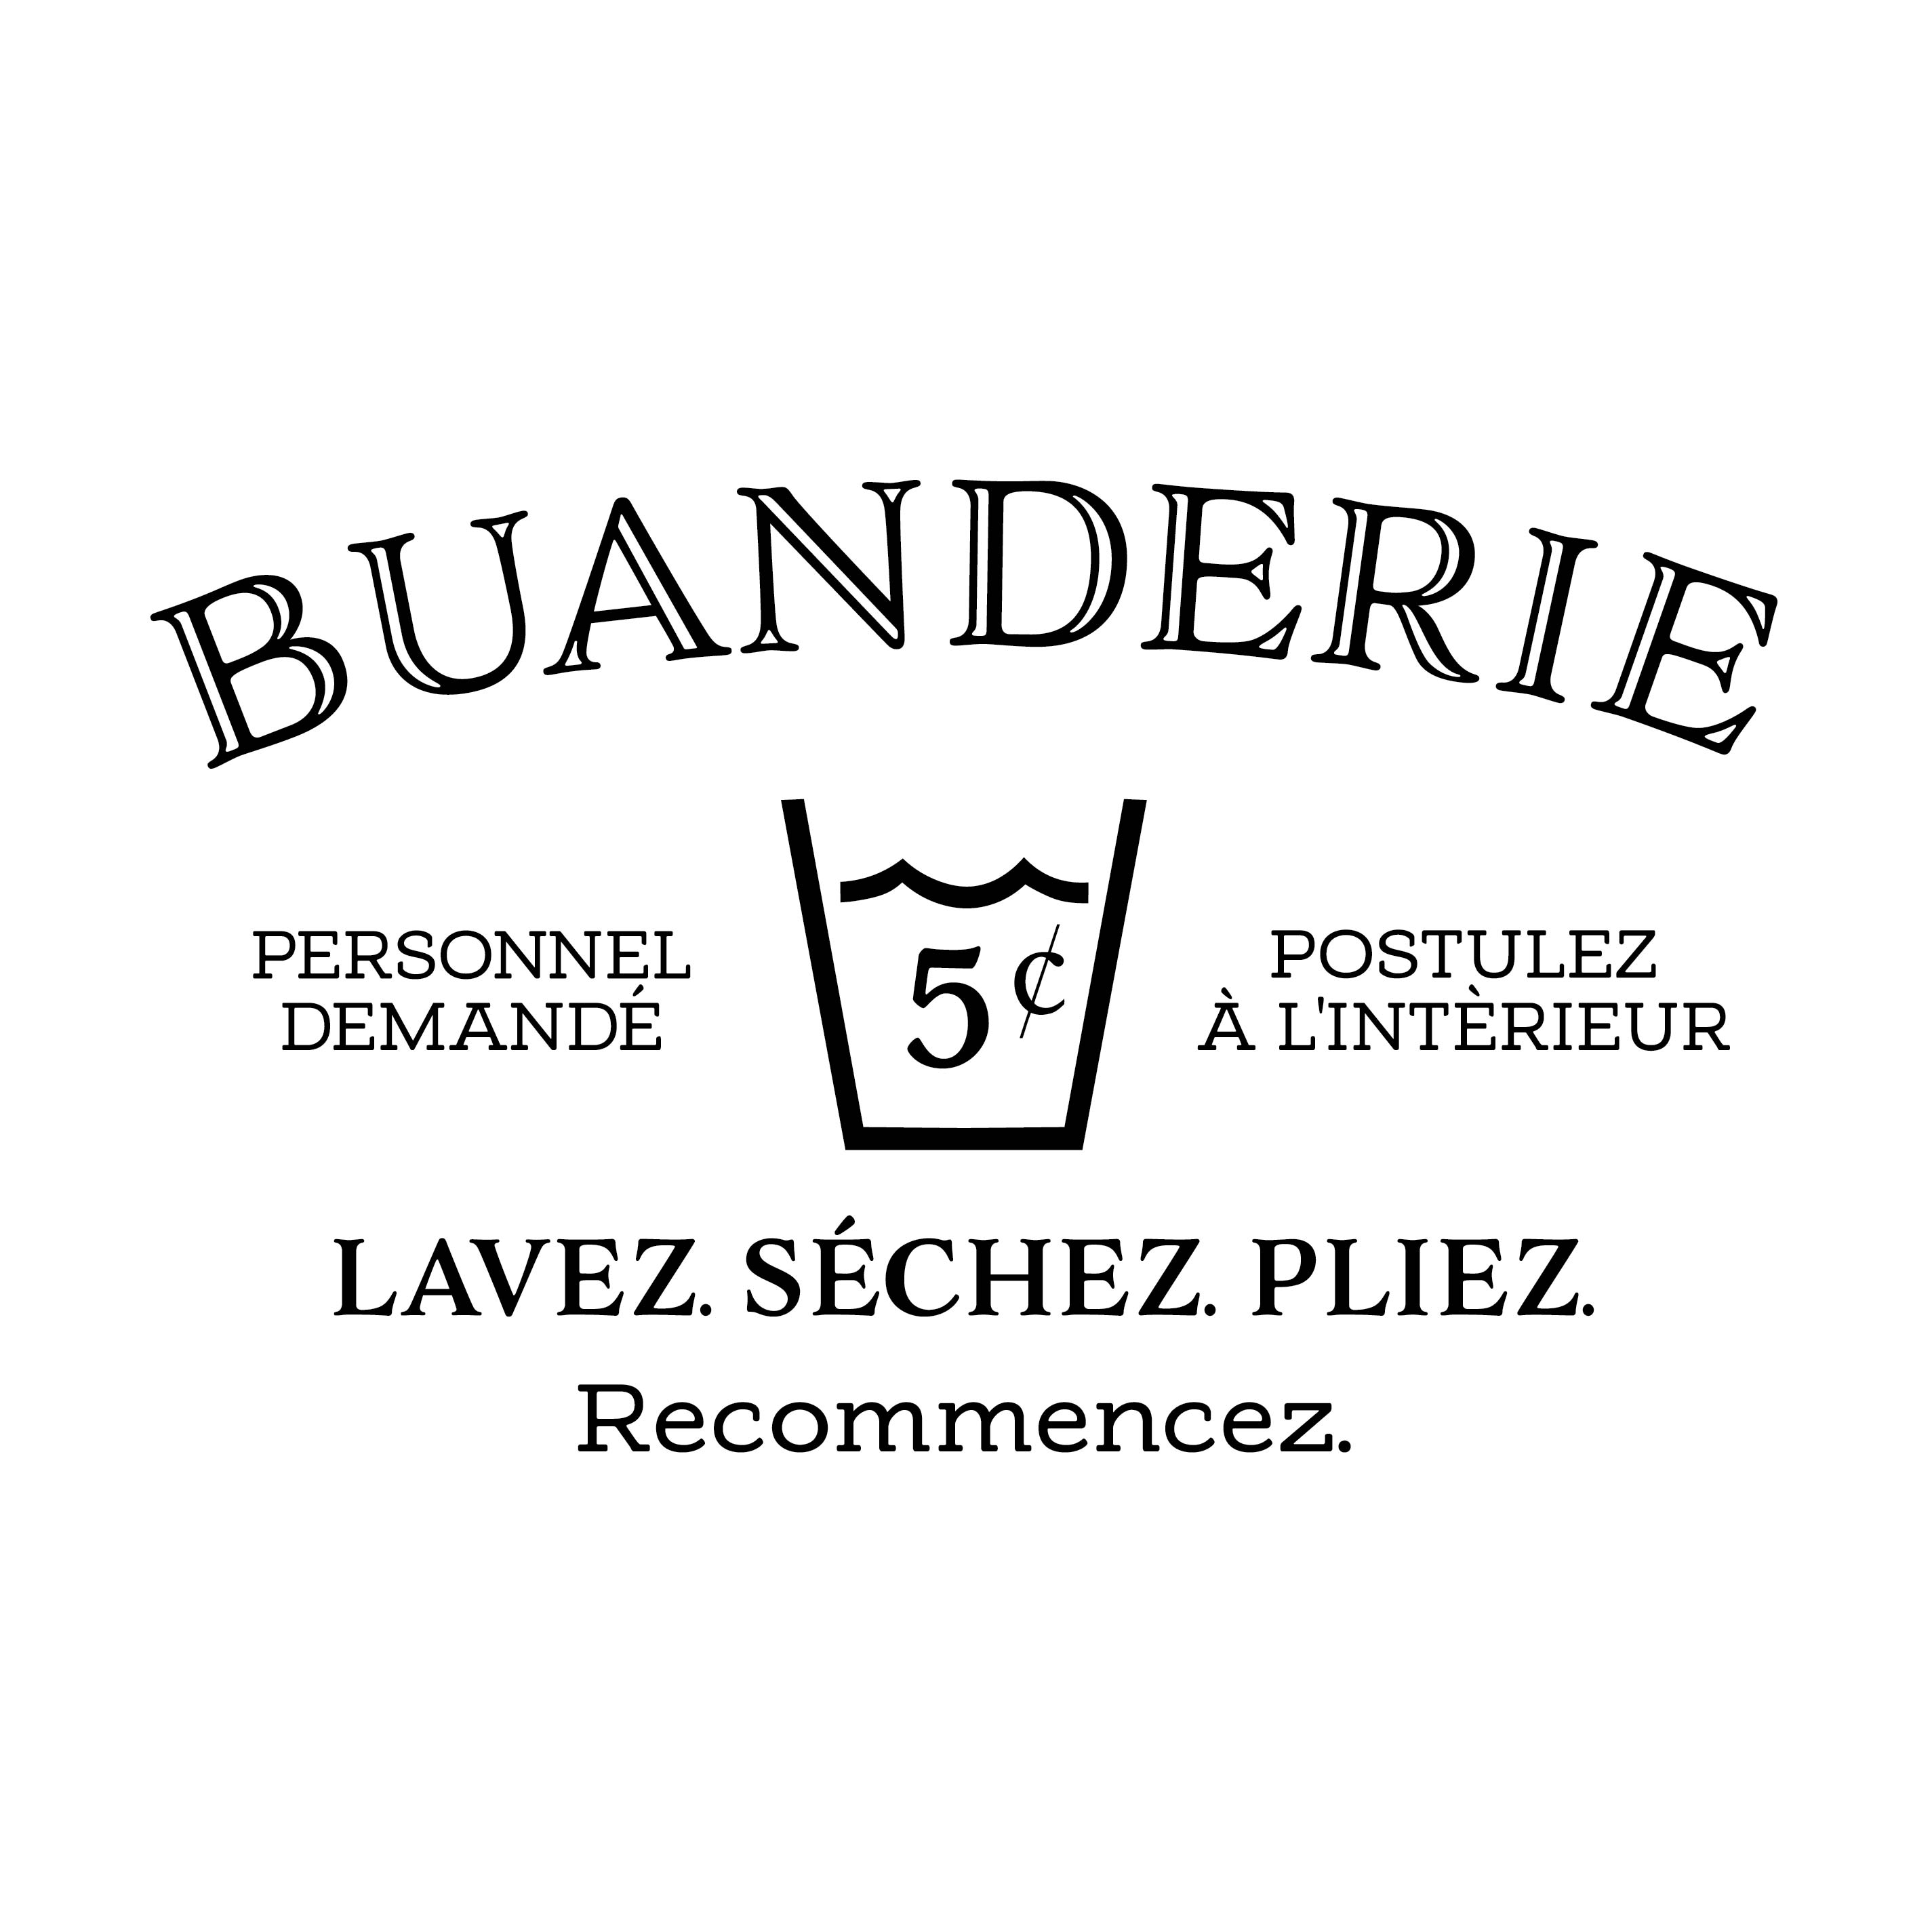 Buanderie French Laundry Vinyl Wall Decal Door Sign Sticker